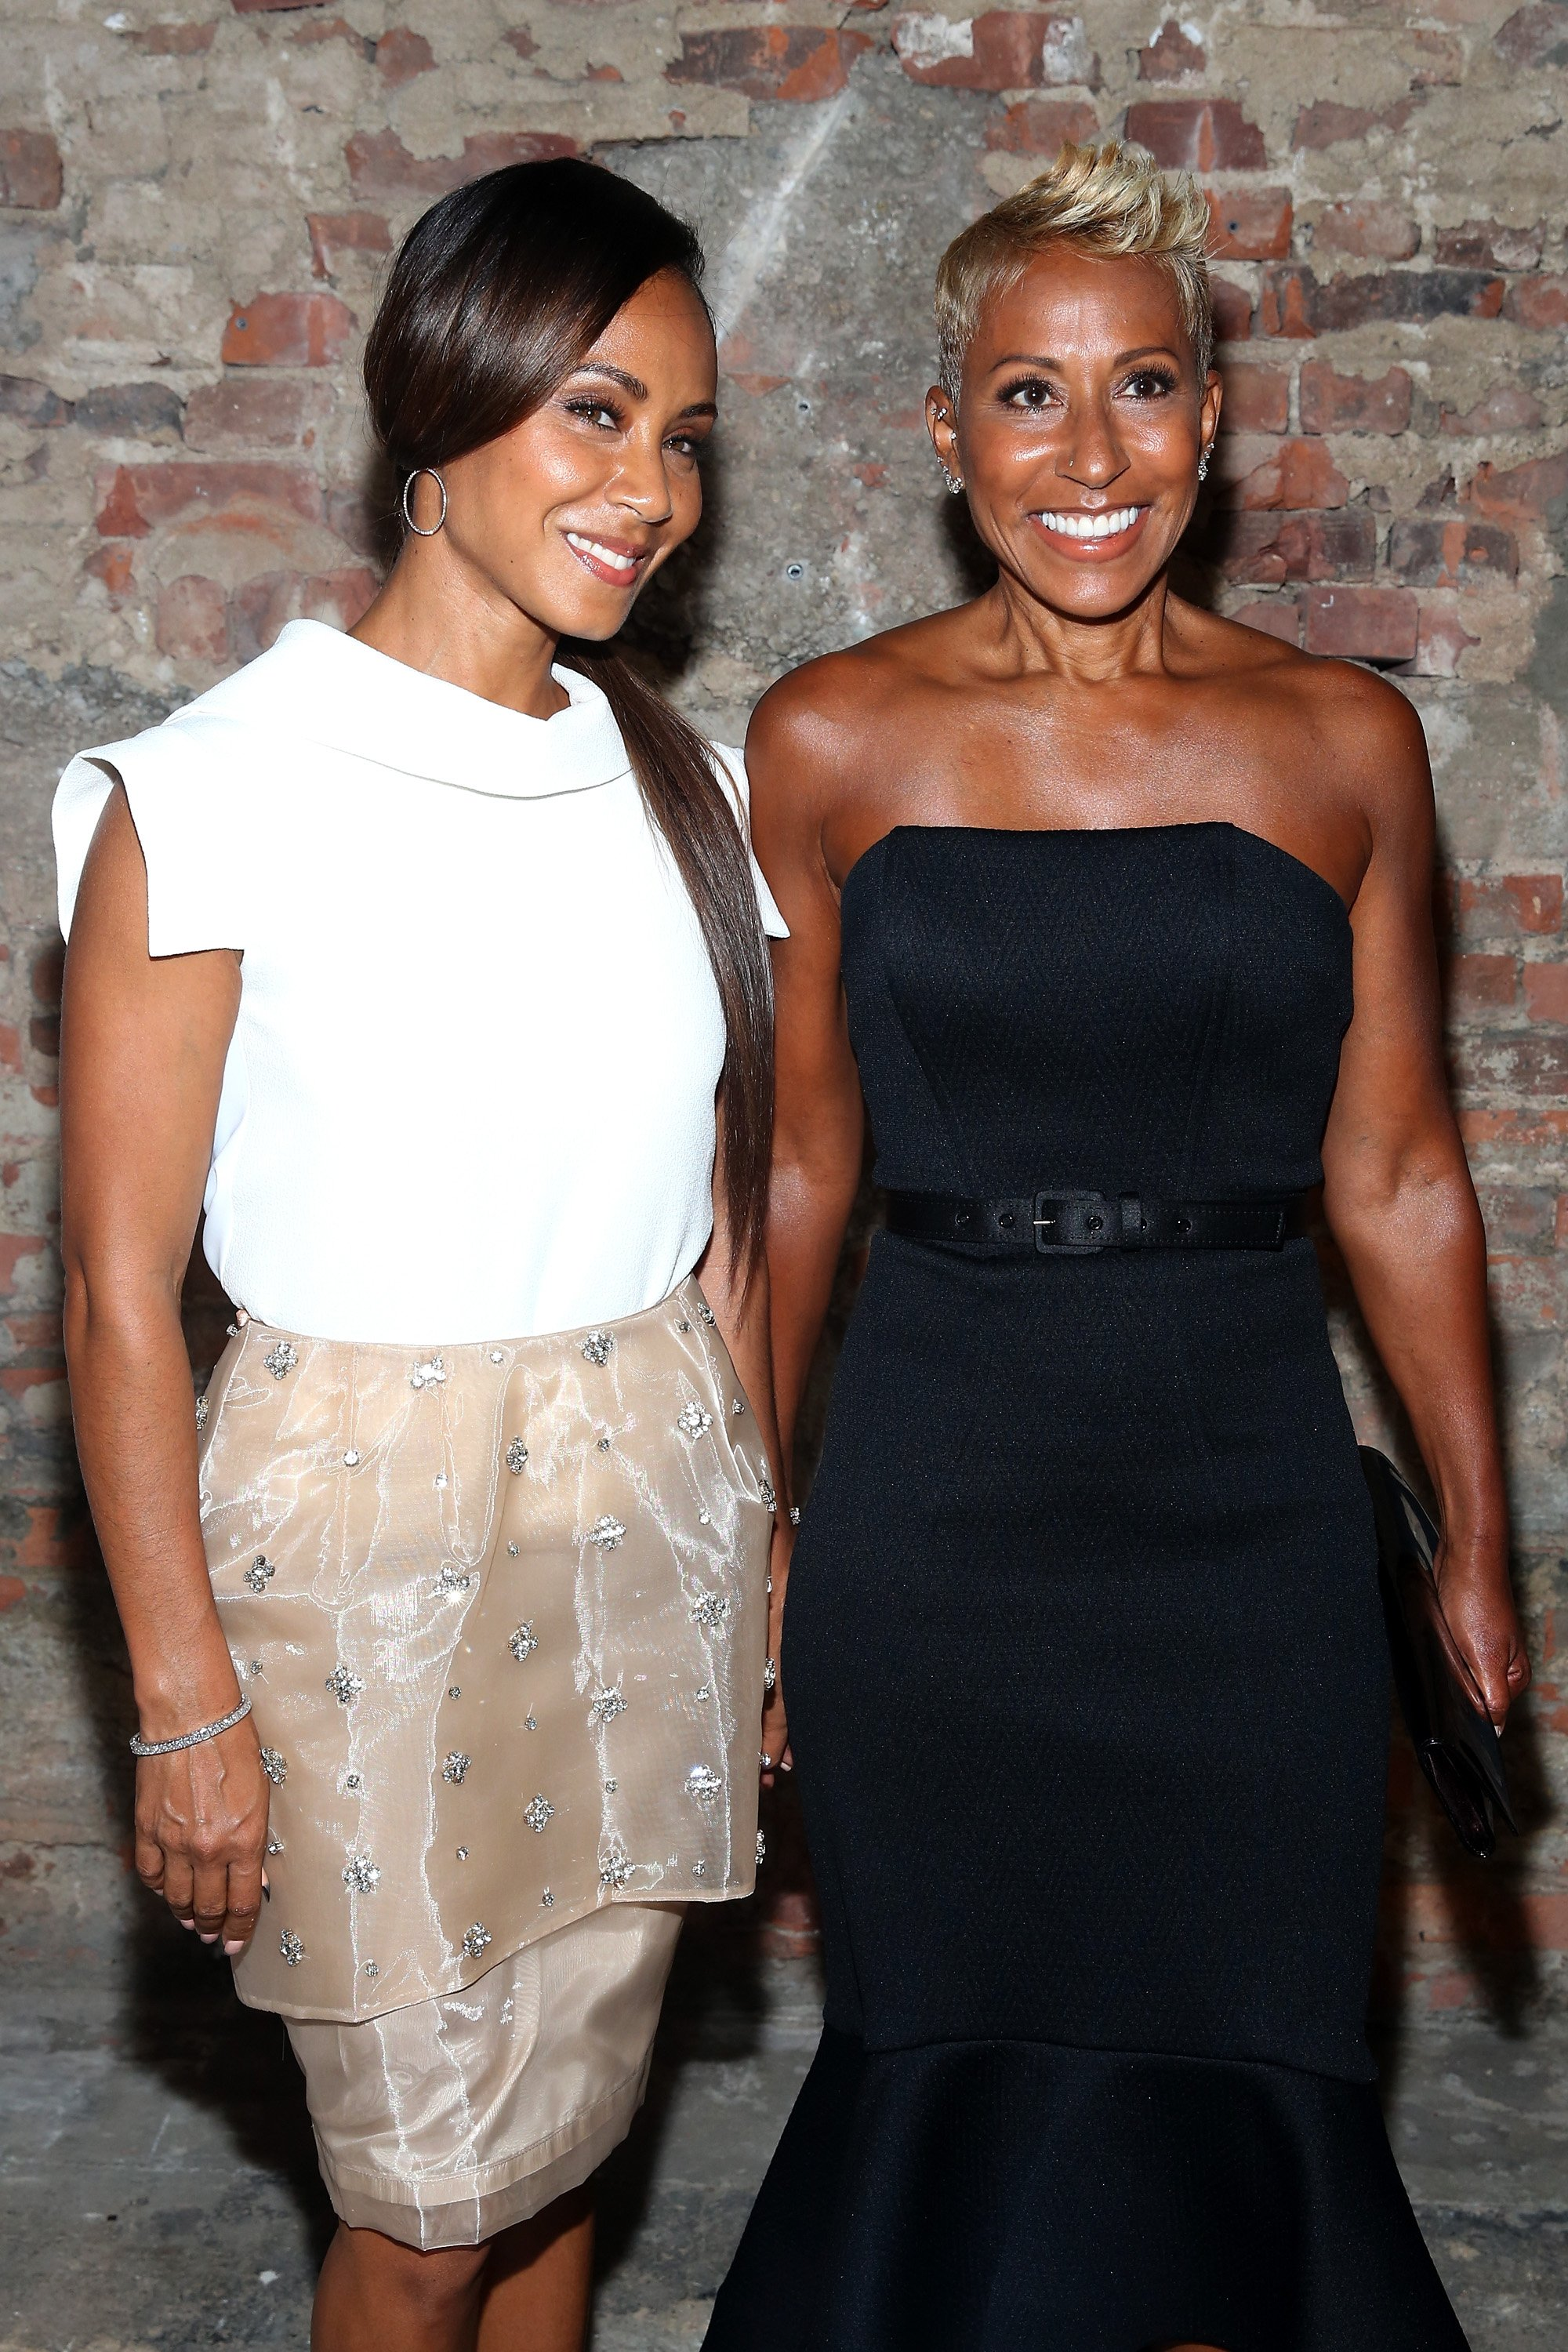 Jada Pinkett Smith and her mother, Adrienne Banfield Norris during Mercedes Benz Fashion week in 2015. | Photo: Getty Images